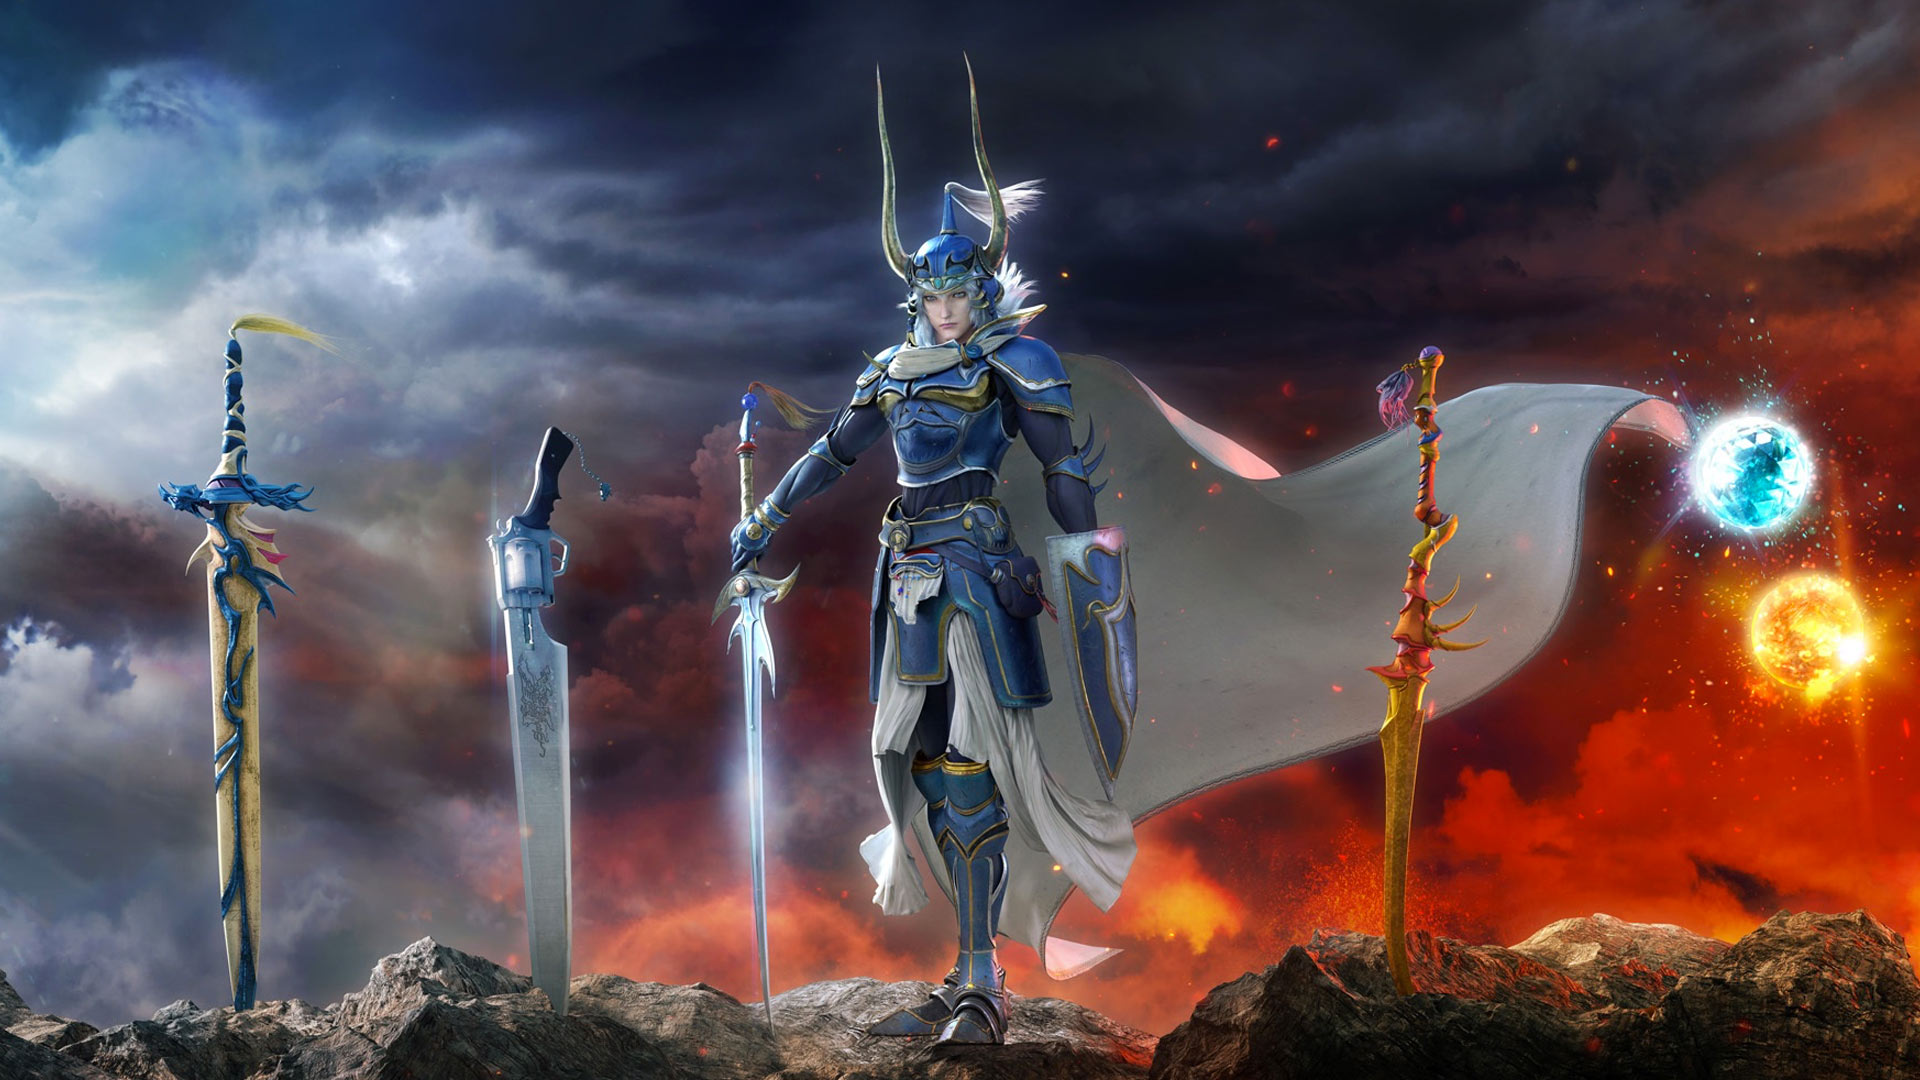 Dissidia Final Fantasy Ps4 Version Announced Let S Talk About